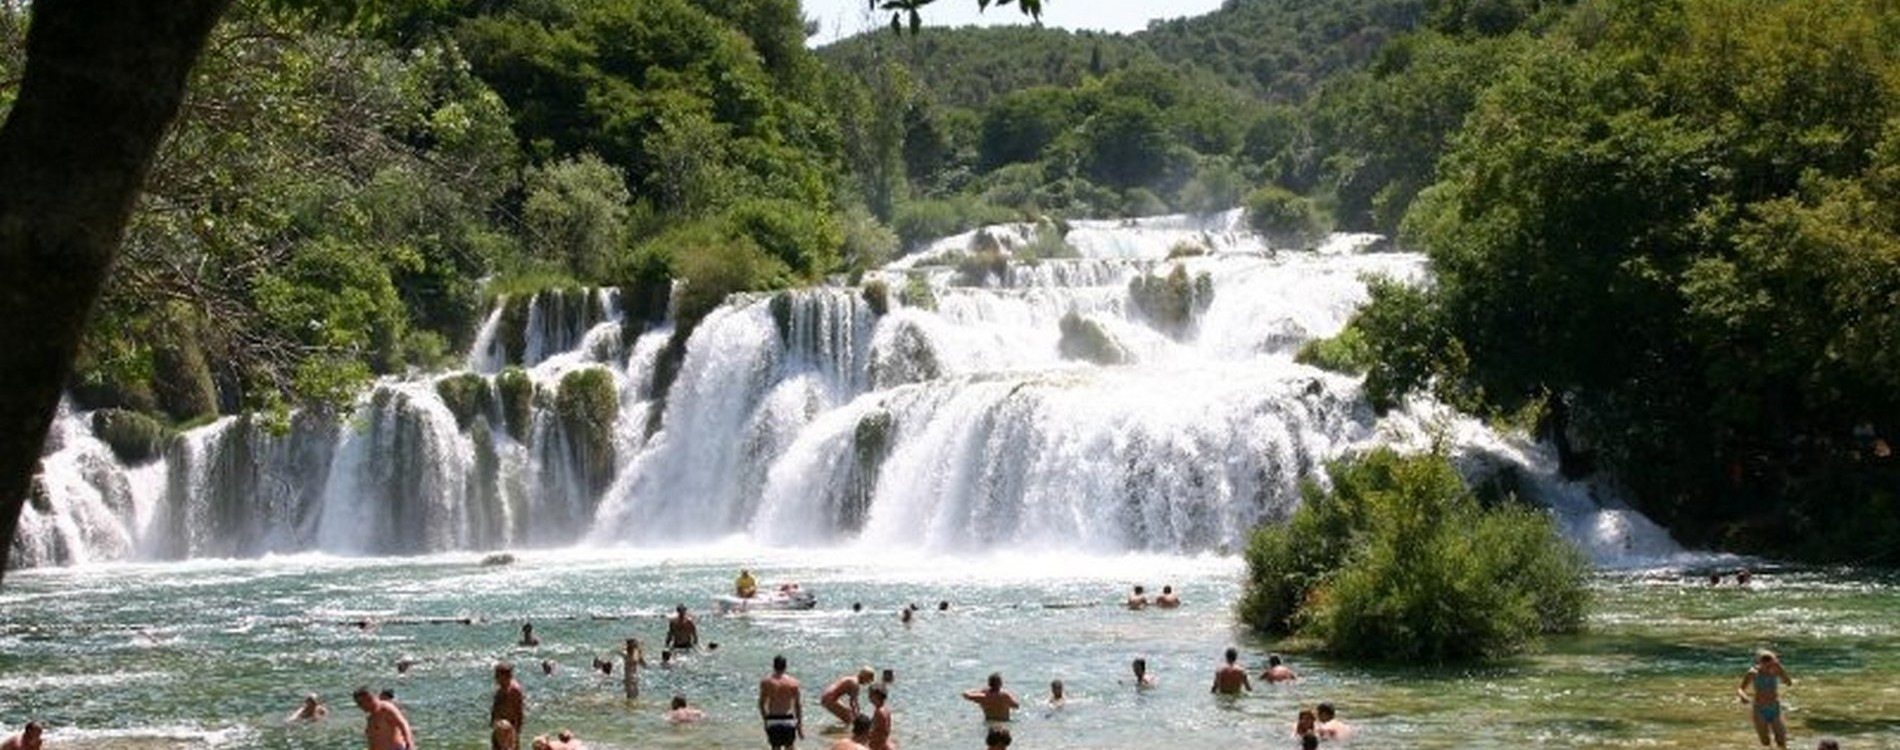 Krka National Park is the seventh national park in Croatia, known for its many lakes and waterfalls. The National Park is located in central Dalmatia, away from the apartment IMPRIĆ cca.50 km. .